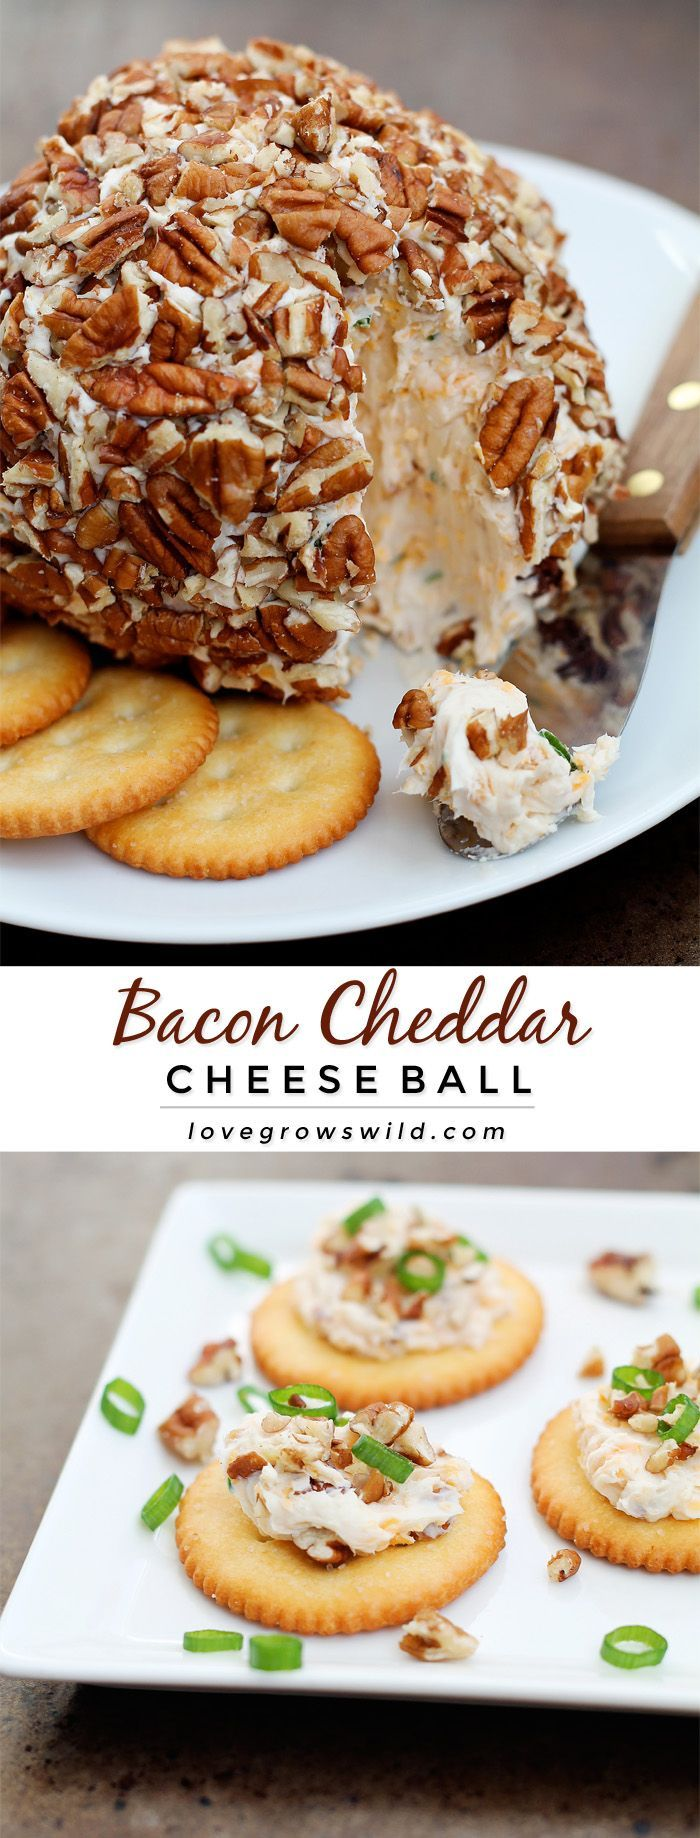 This Bacon Cheddar Cheese Ball is always a party favorite! Super creamy, loaded with bacon, and wrapped in pecans for a delicious and easy appetizer!   LoveGrowsWild.com